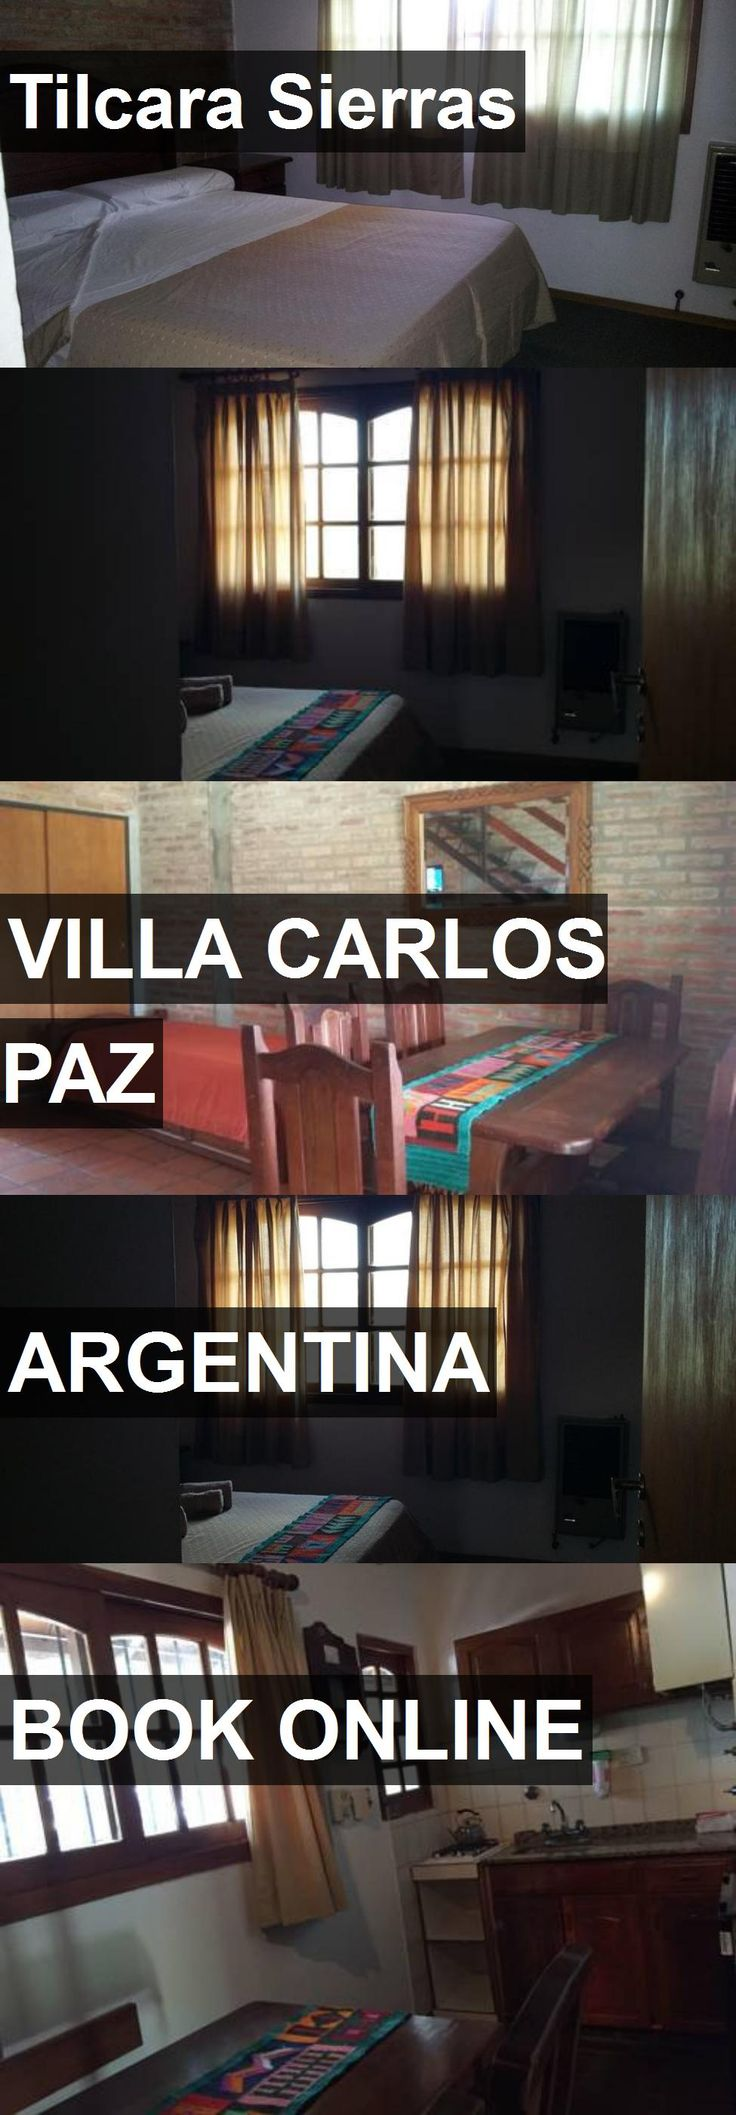 Hotel Tilcara Sierras in Villa Carlos Paz, Argentina. For more information, photos, reviews and best prices please follow the link. #Argentina #VillaCarlosPaz #travel #vacation #hotel